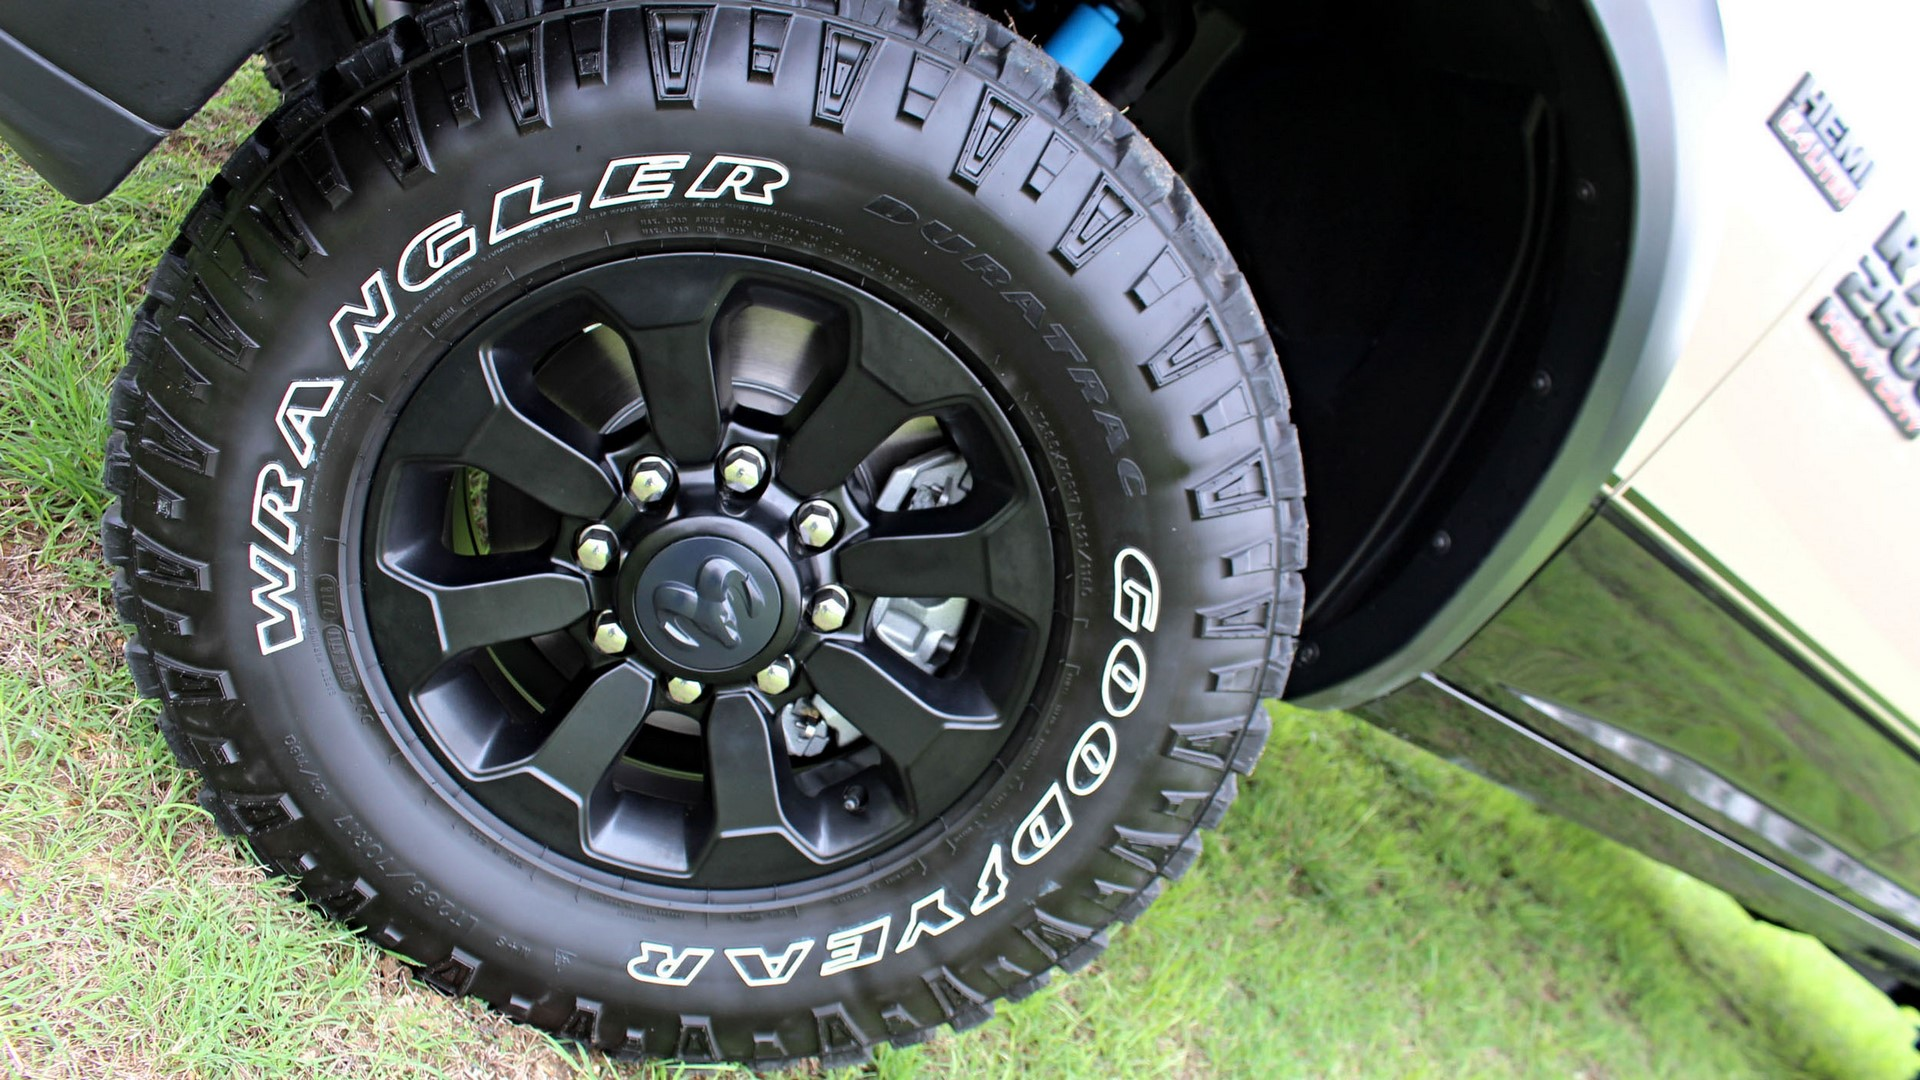 ram-2500-powerwagon-xtras-details-tire-3-wide-1